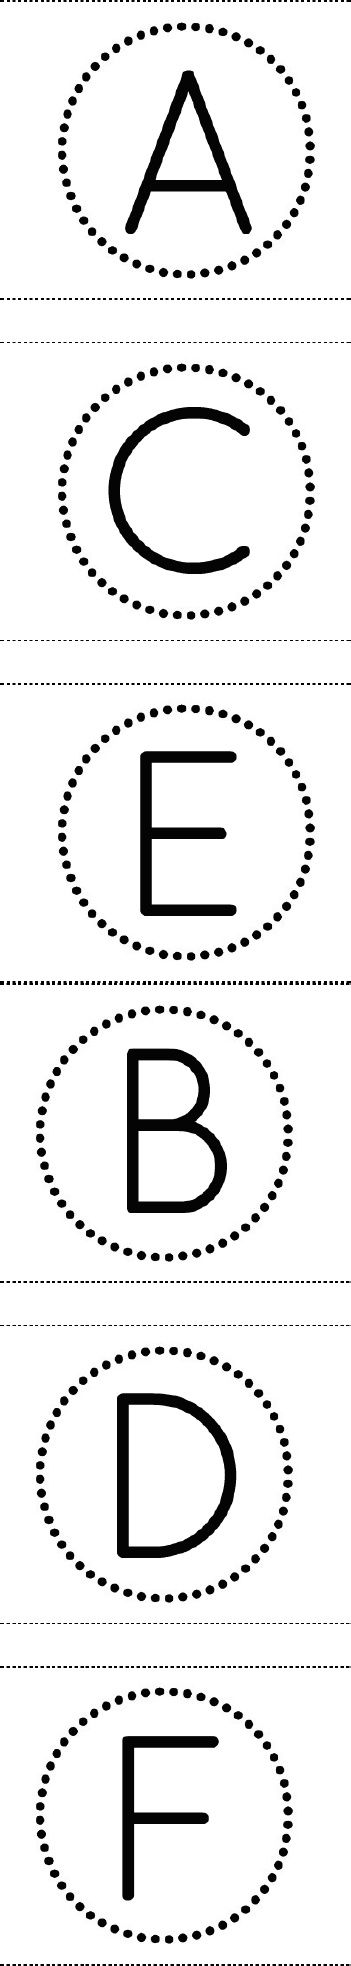 Free Printable Circle Banner Alphabet - for making birthday banners, signs, etc!Diy Banner, Birthday Banners, Alphabet Banner, Diy Birthday Banner, Printables Circles, Banners Alphabet, Circles Banners, Free Printable Banner, Free Printables